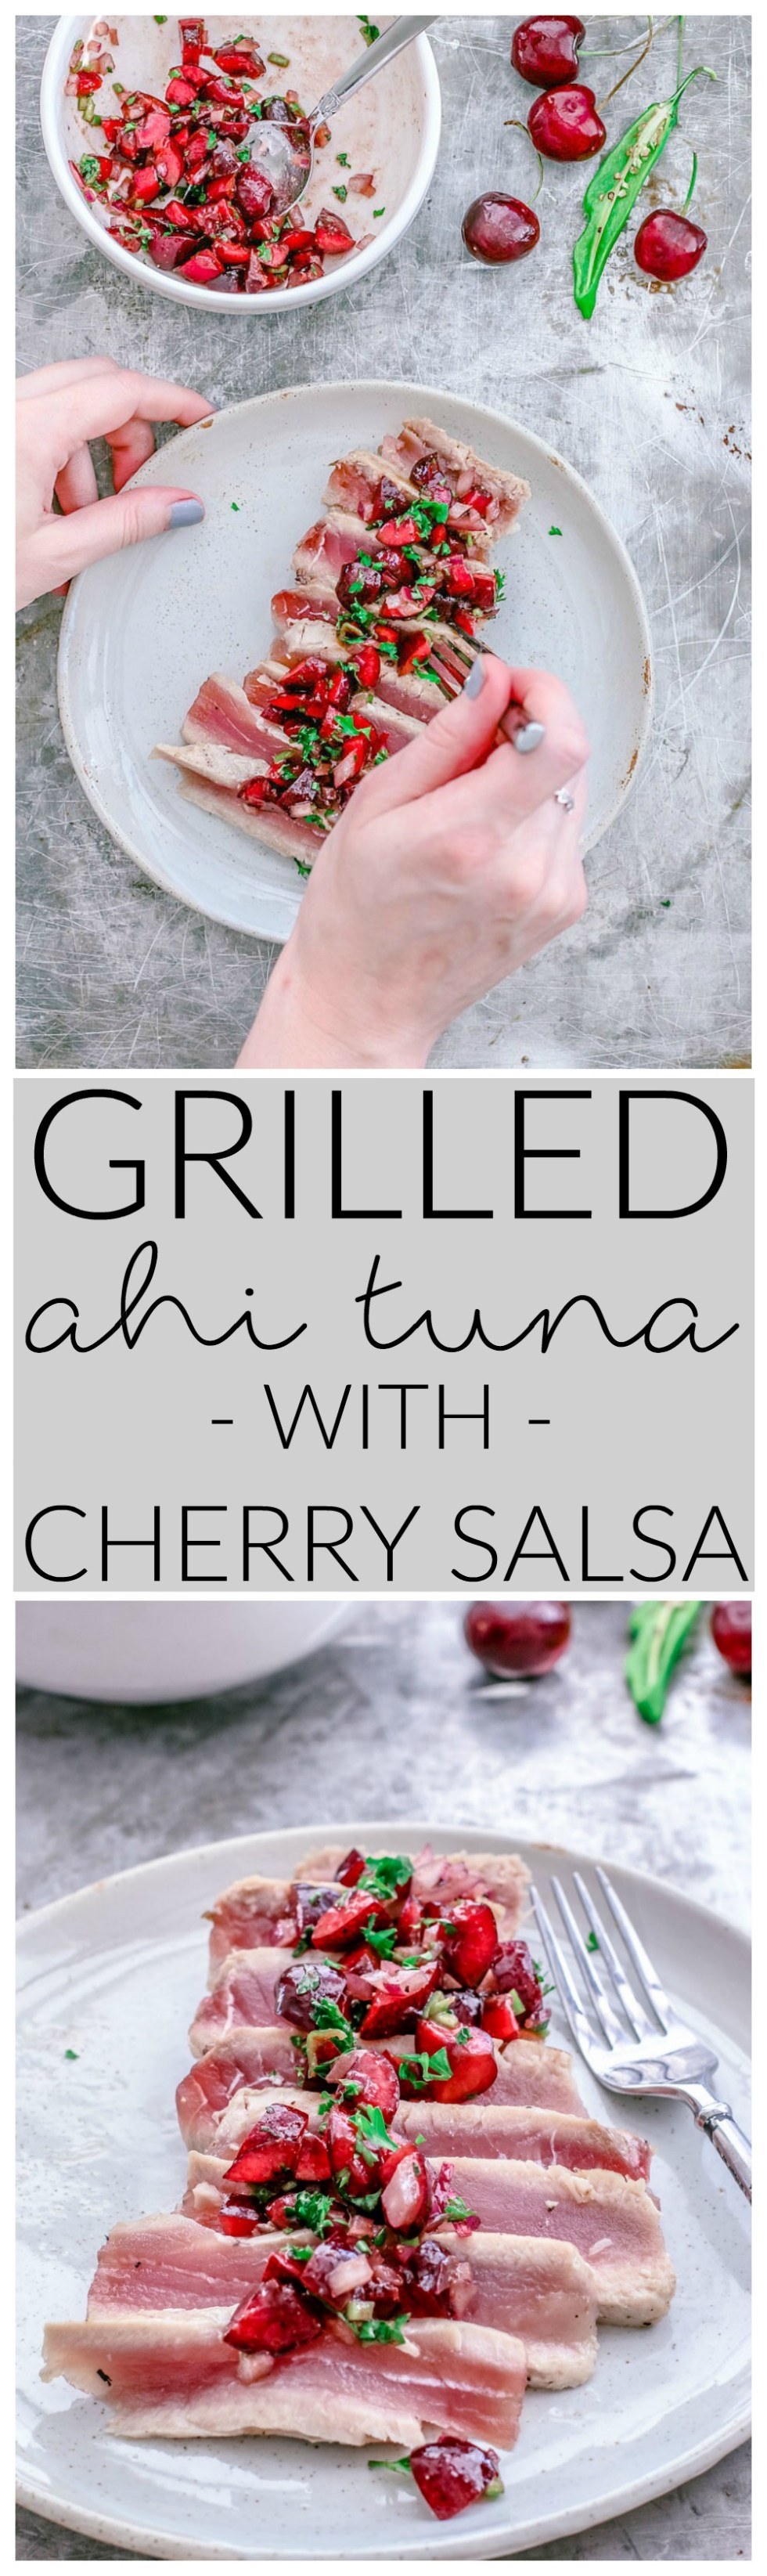 Grilled Ahi Tuna With Cherry Salsa | Killing Thyme